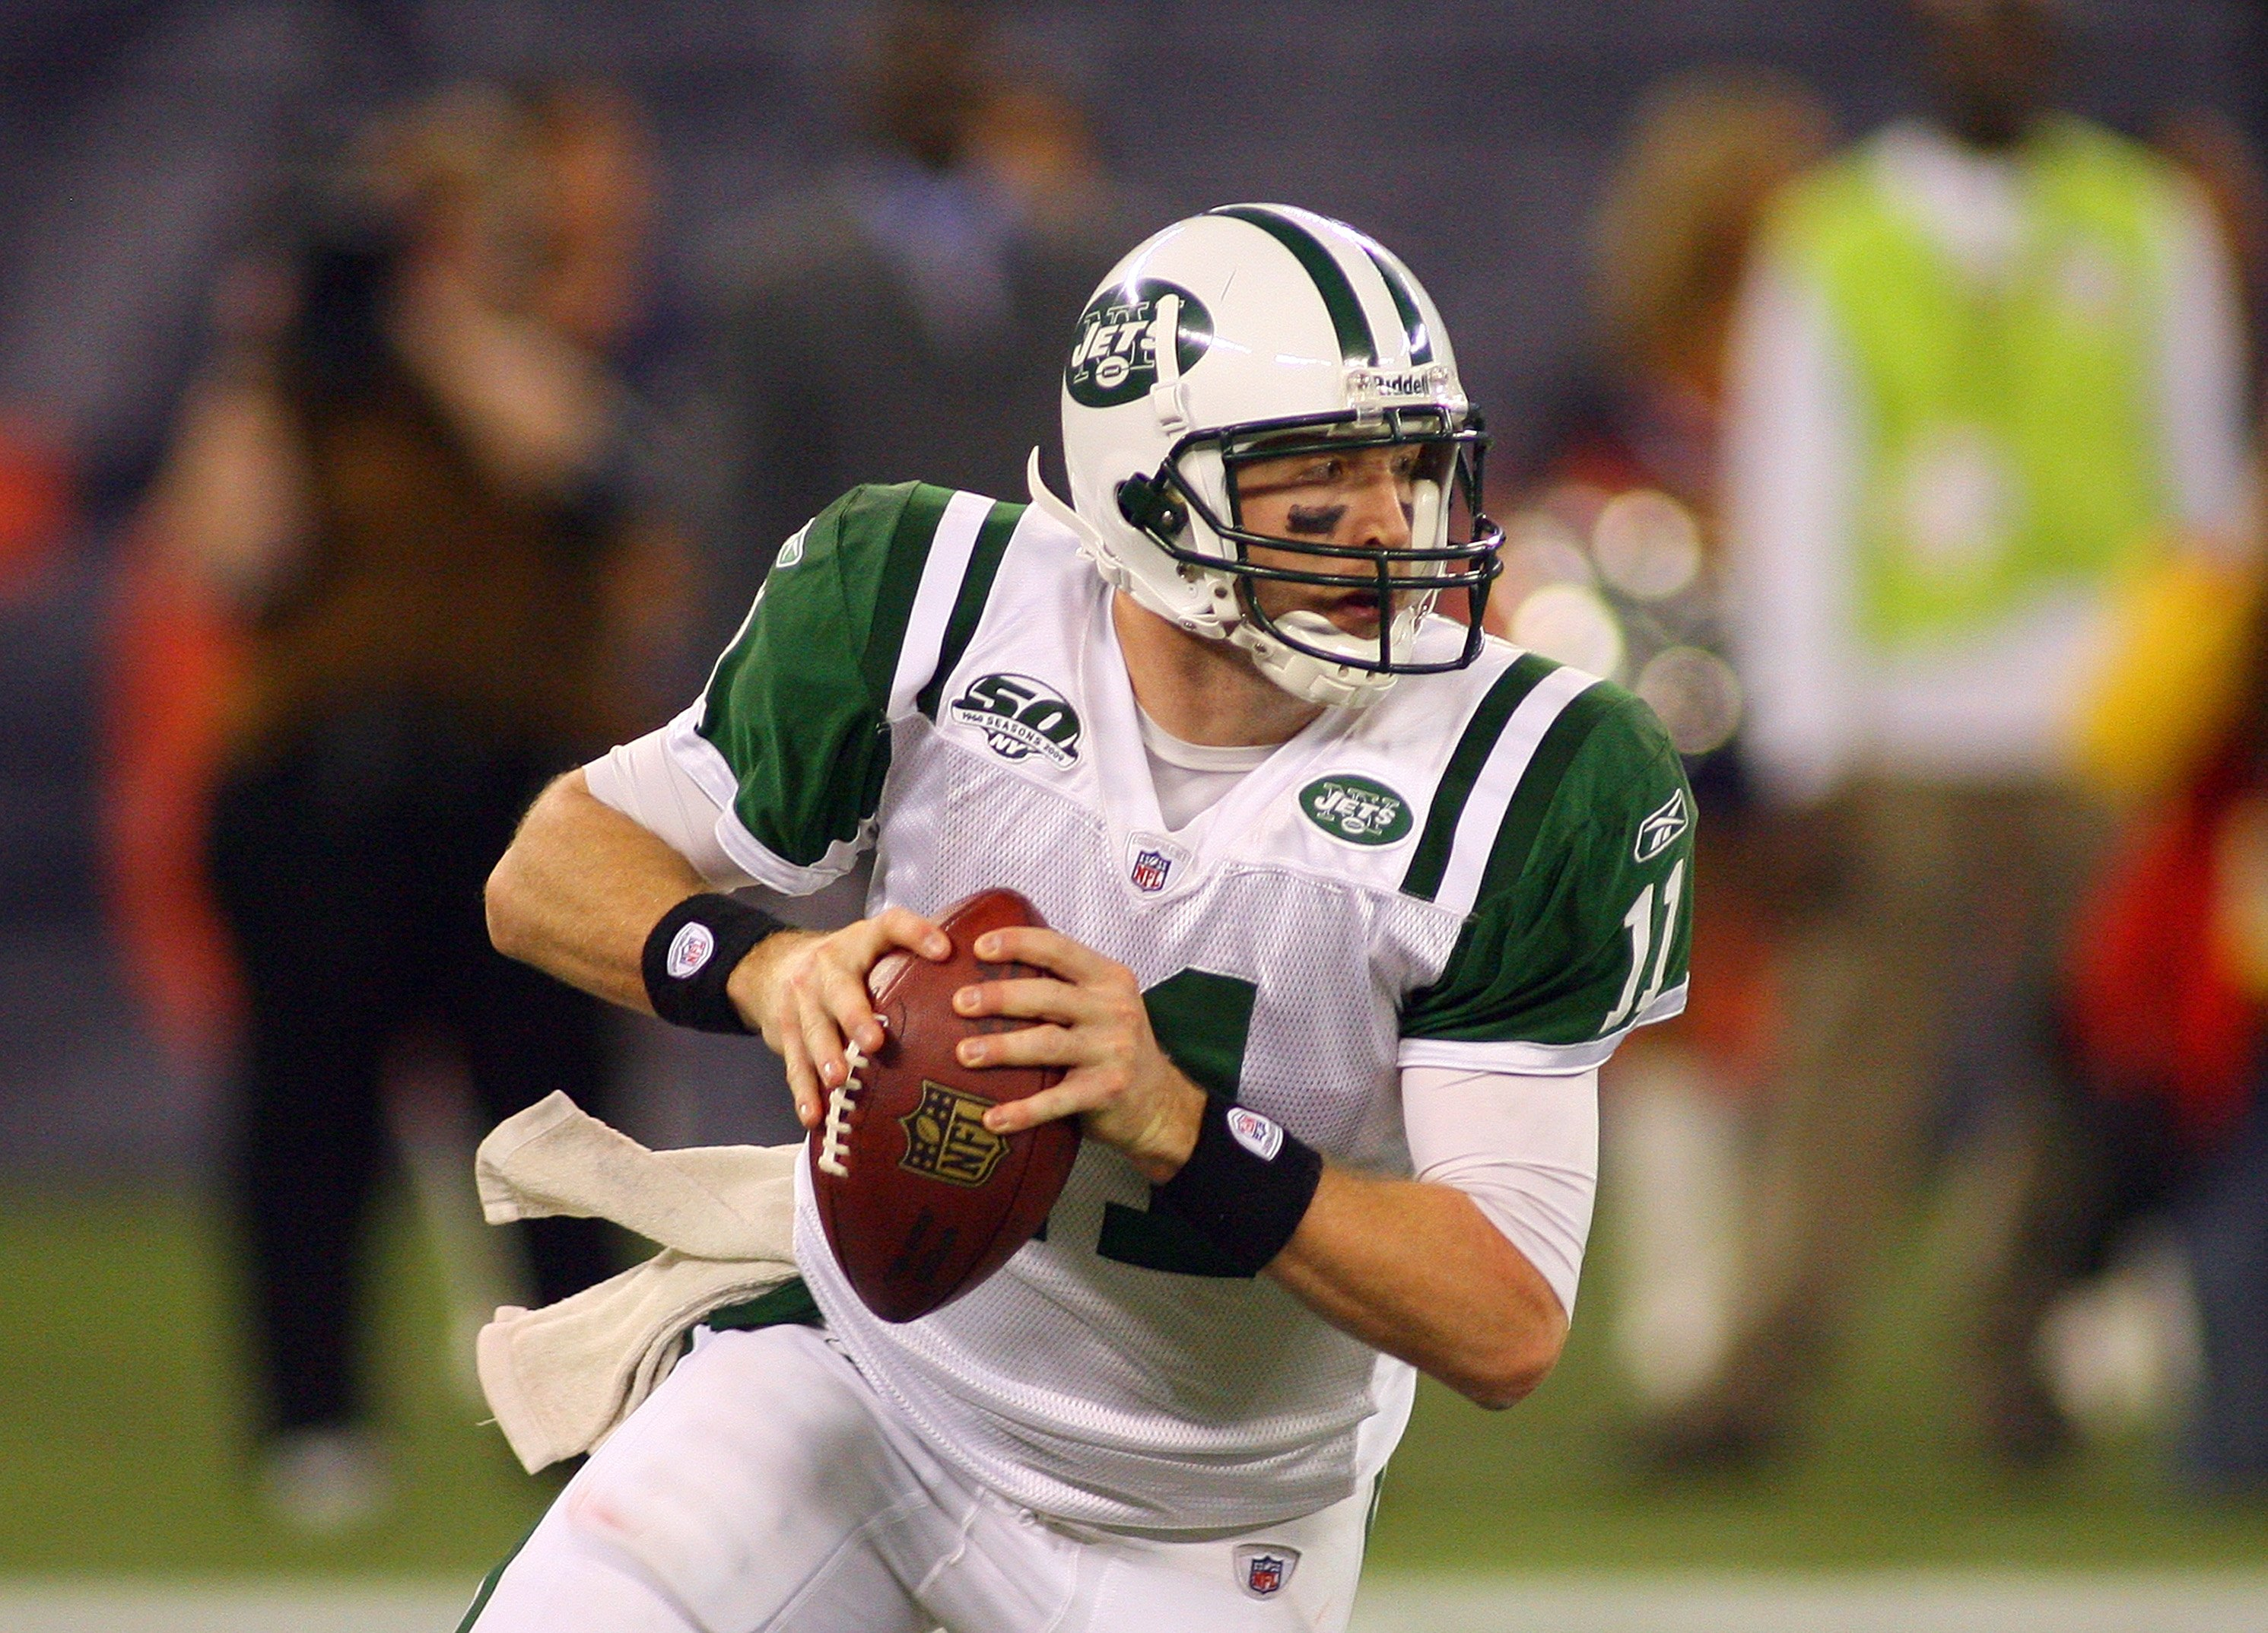 TORONTO - DECEMBER 3:  Quarterback Kellen Clemens #11 of the New York Jets looks to make a pass play during their NFL game against the Buffalo Bills on December 3, 2009  at Rogers Centre in Toronto, Ontario, Canada. The Jets defeated the Bills 19-13. (Pho